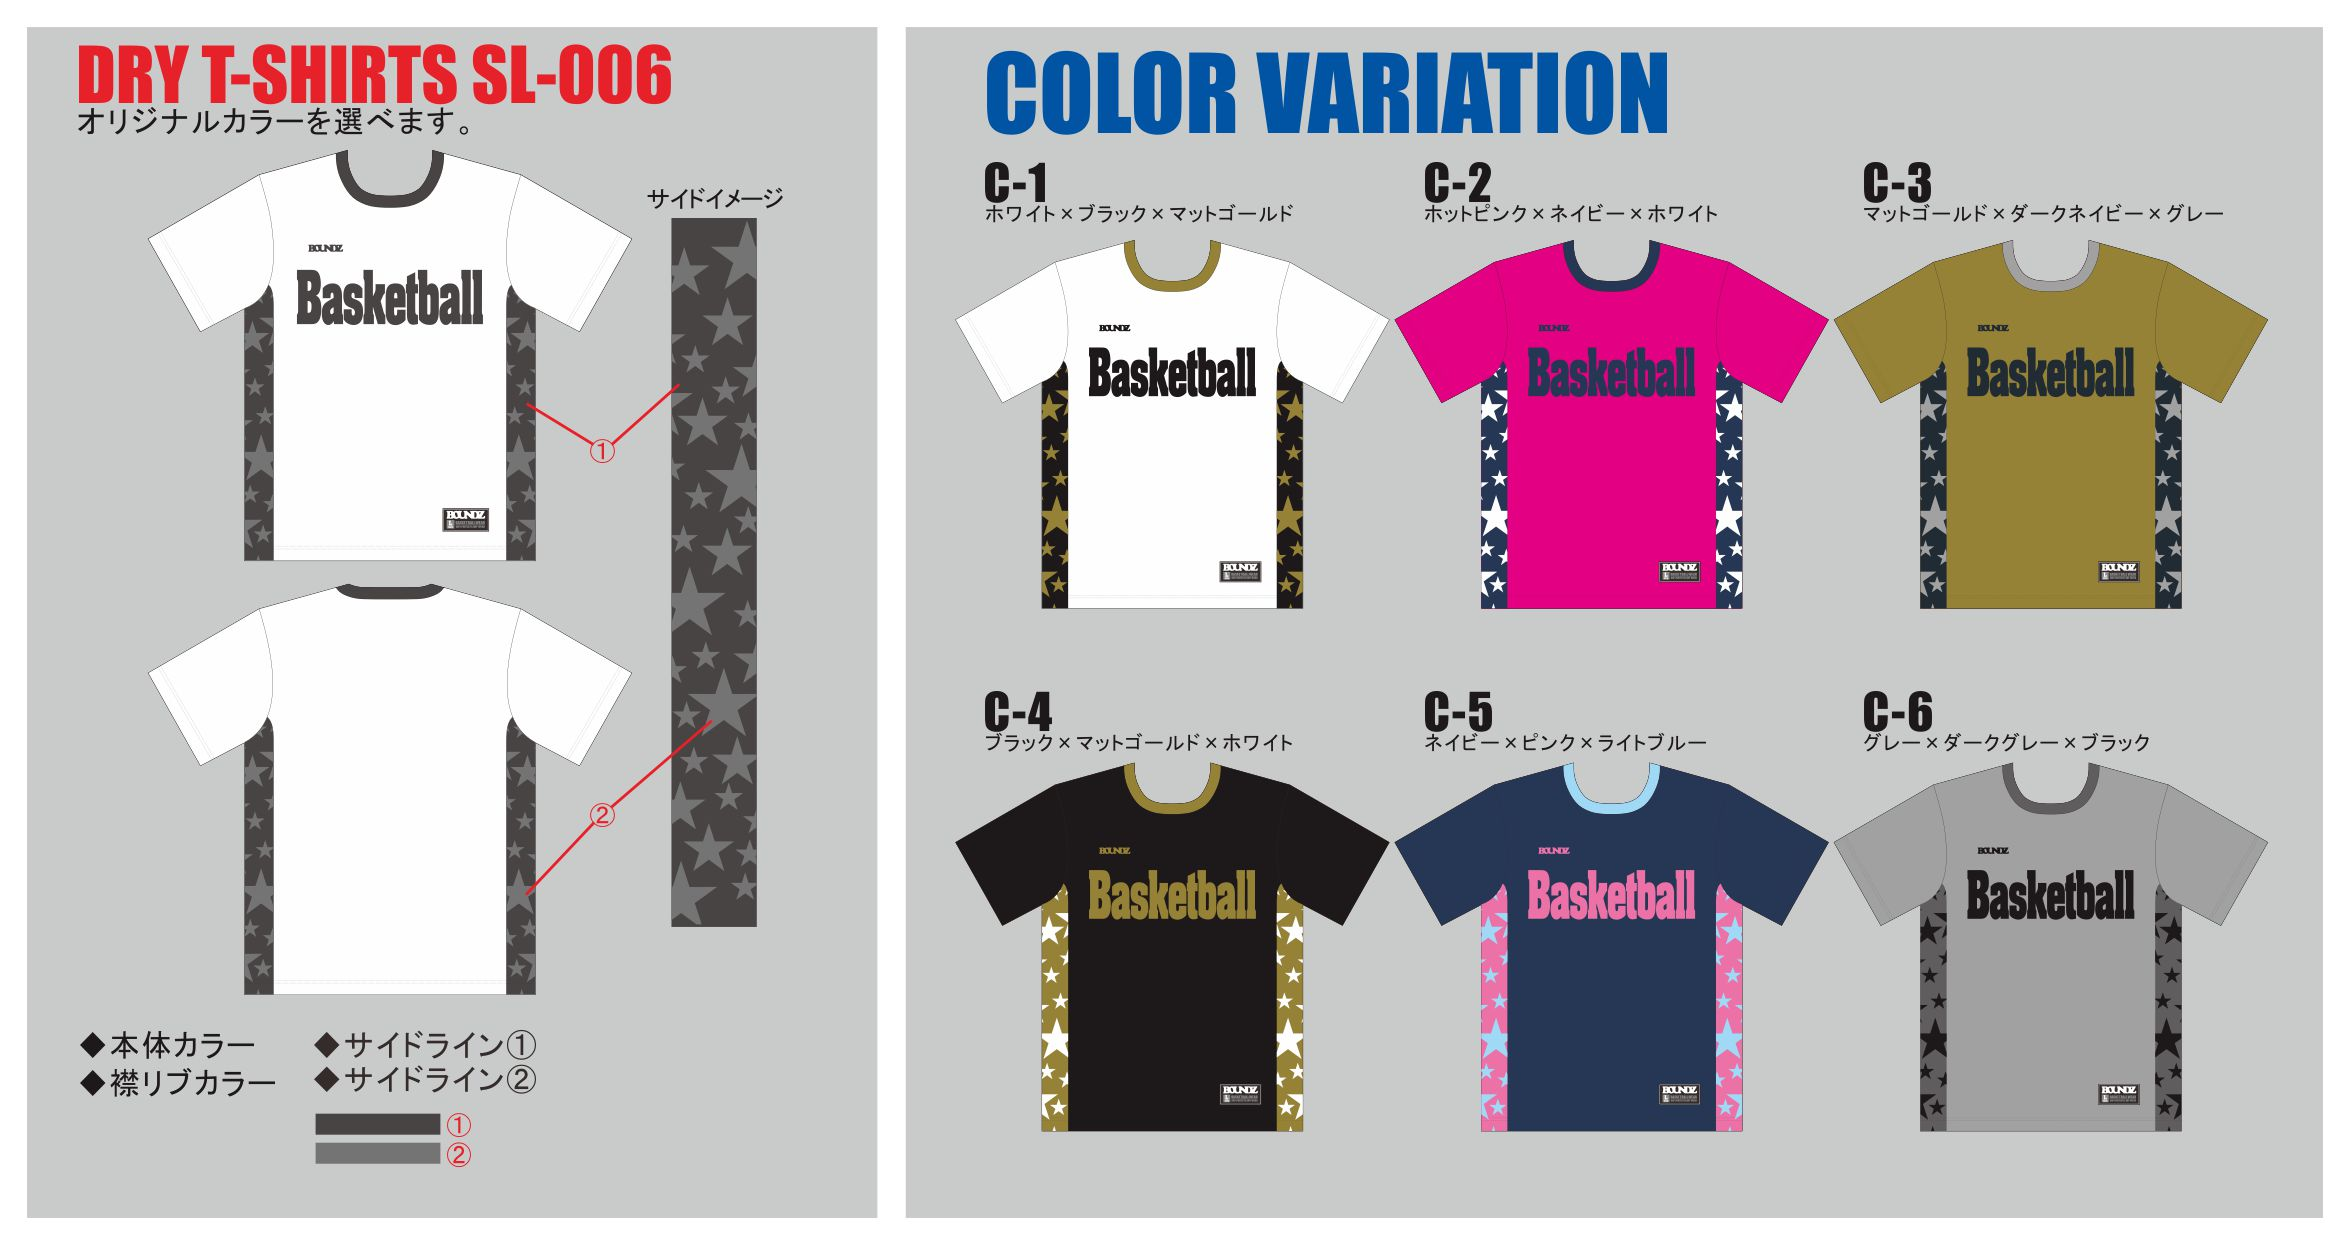 Tshirt_SL006_color